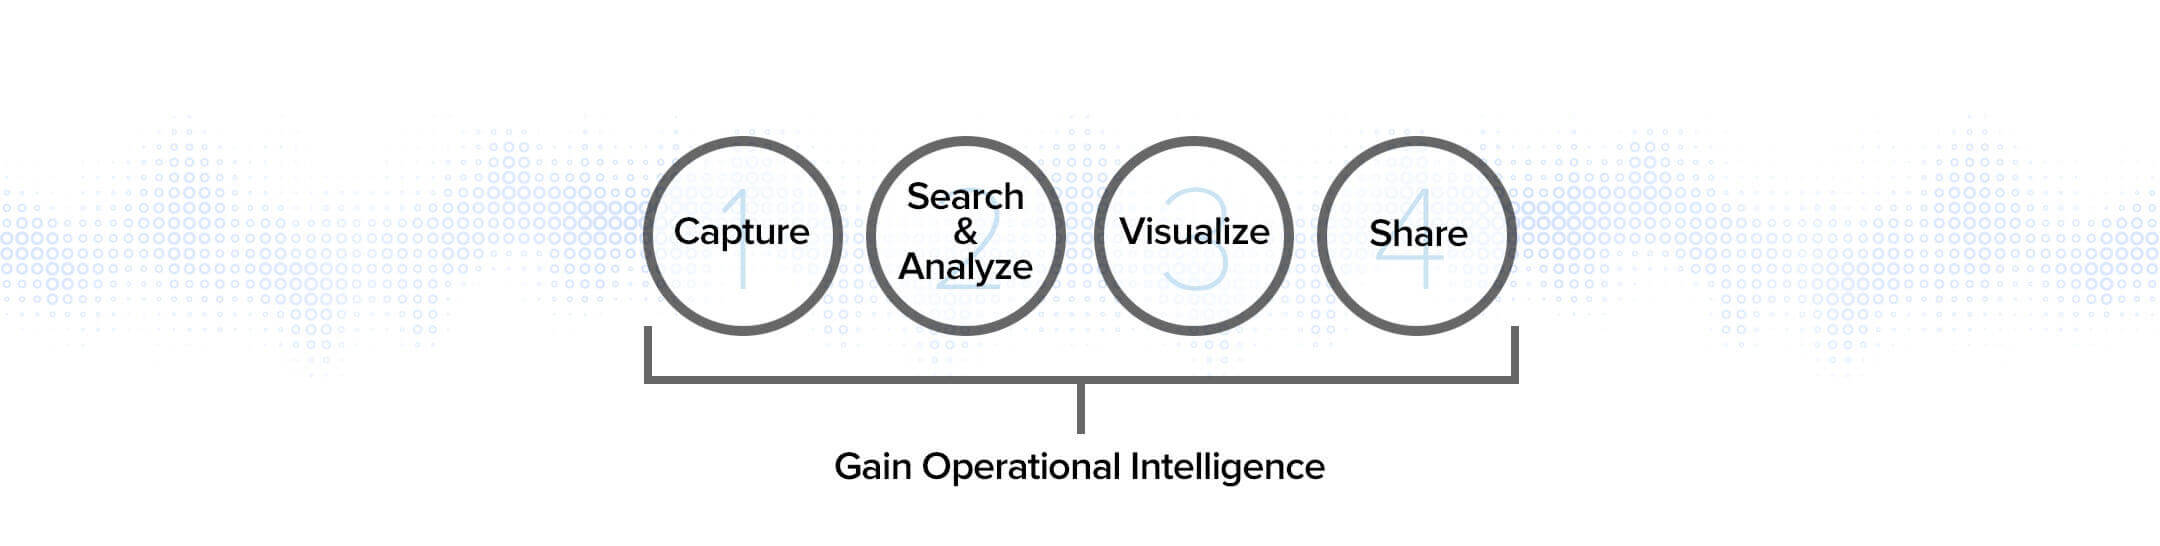 HIW - Gain Operational Intelligence